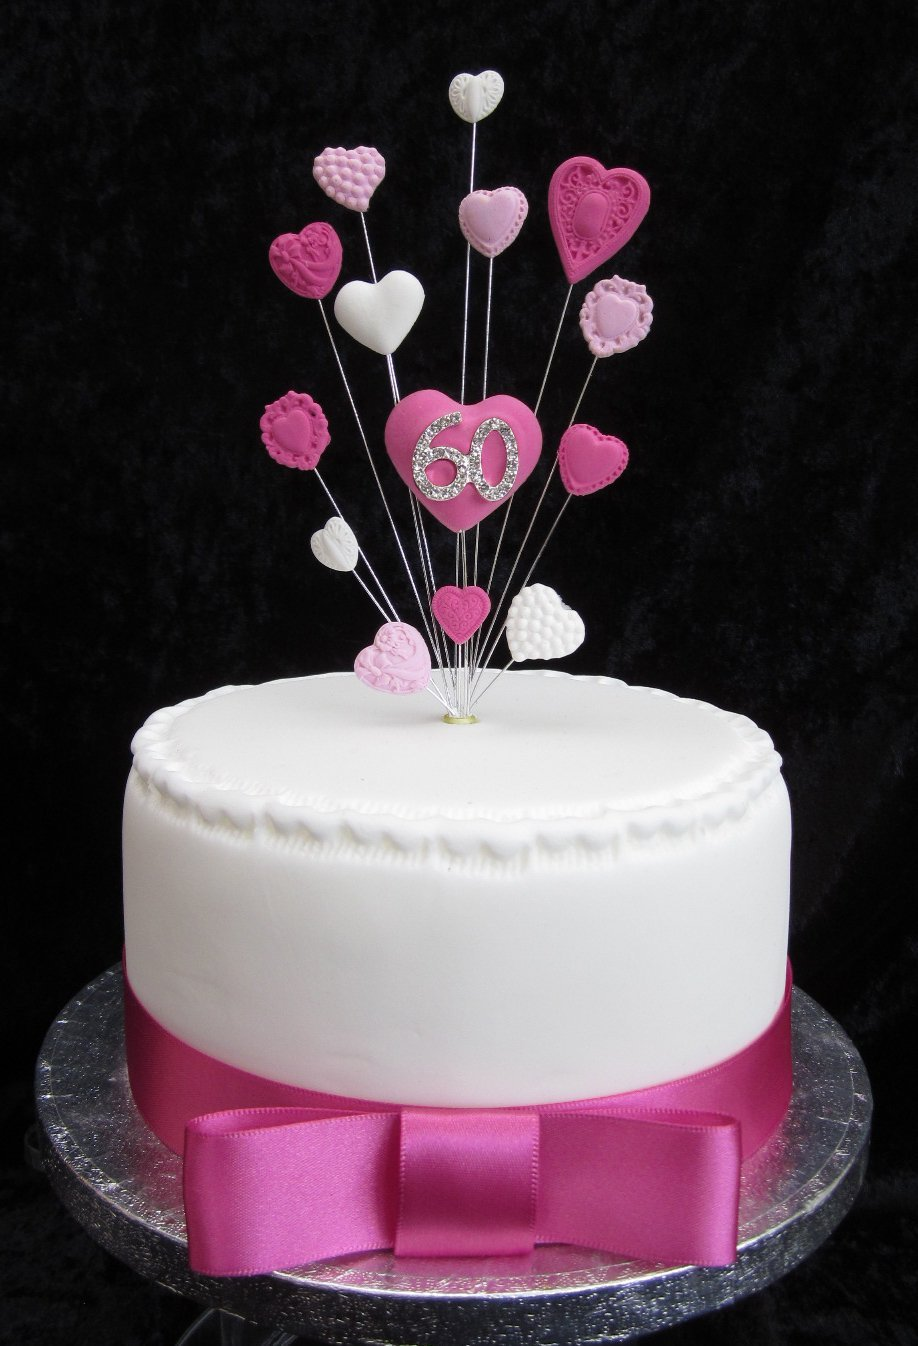 Phenomenal 60Th Birthday Cake Topper Pinks And White Hearts Ideal For A Small Funny Birthday Cards Online Inifofree Goldxyz